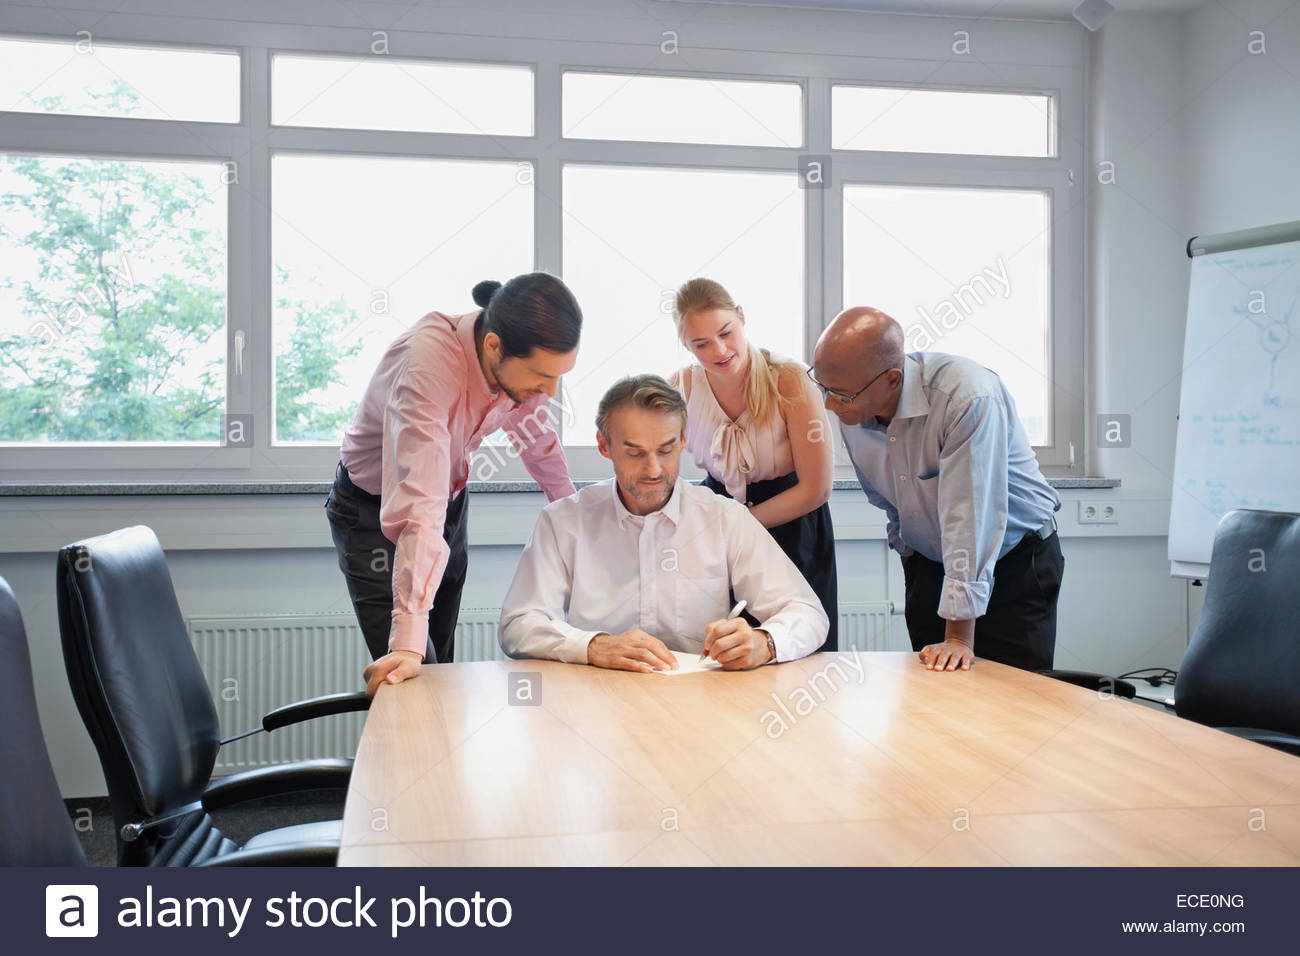 Multi-racial Group conference room teamwork table - Stock Image